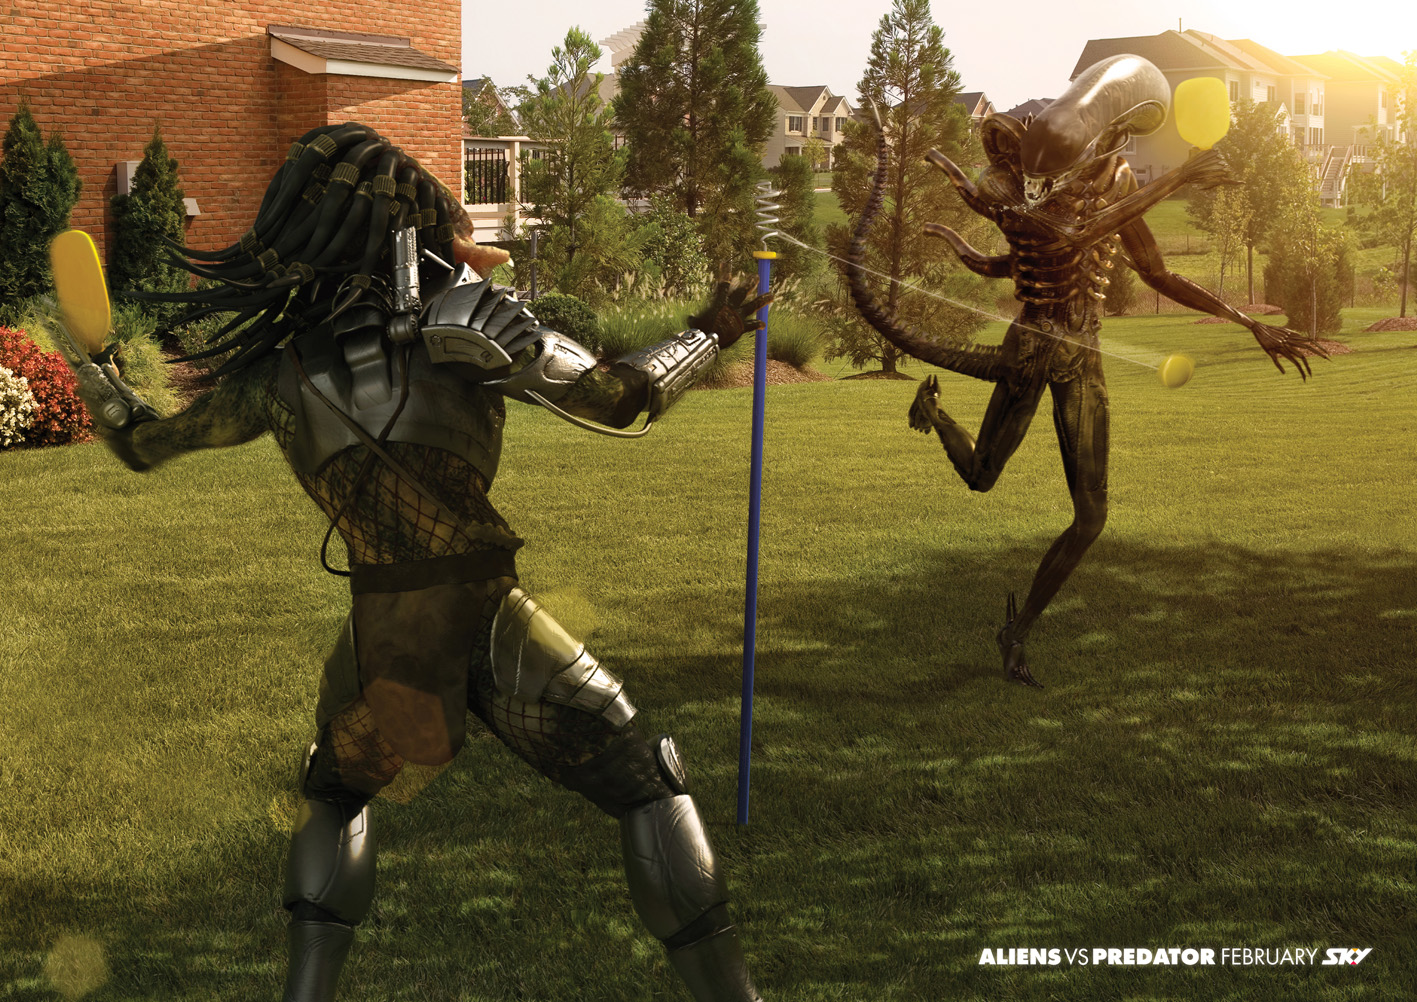 Aliens vs predator games on sky tv in new zealand